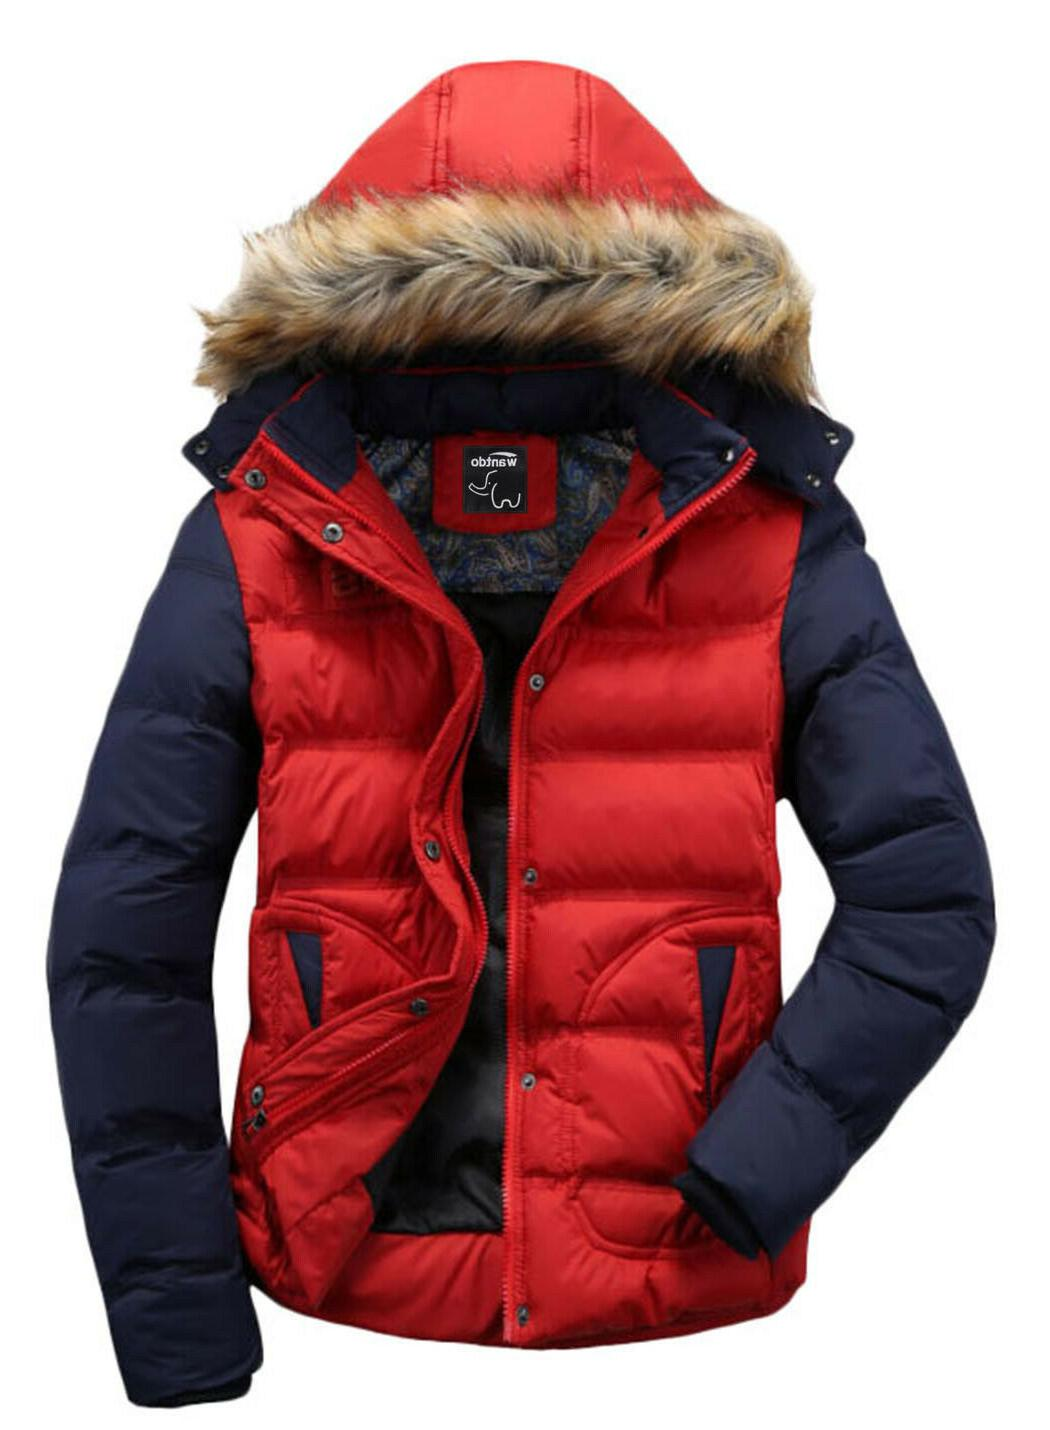 Wantdo Winter Coat Casual Warm Outwear